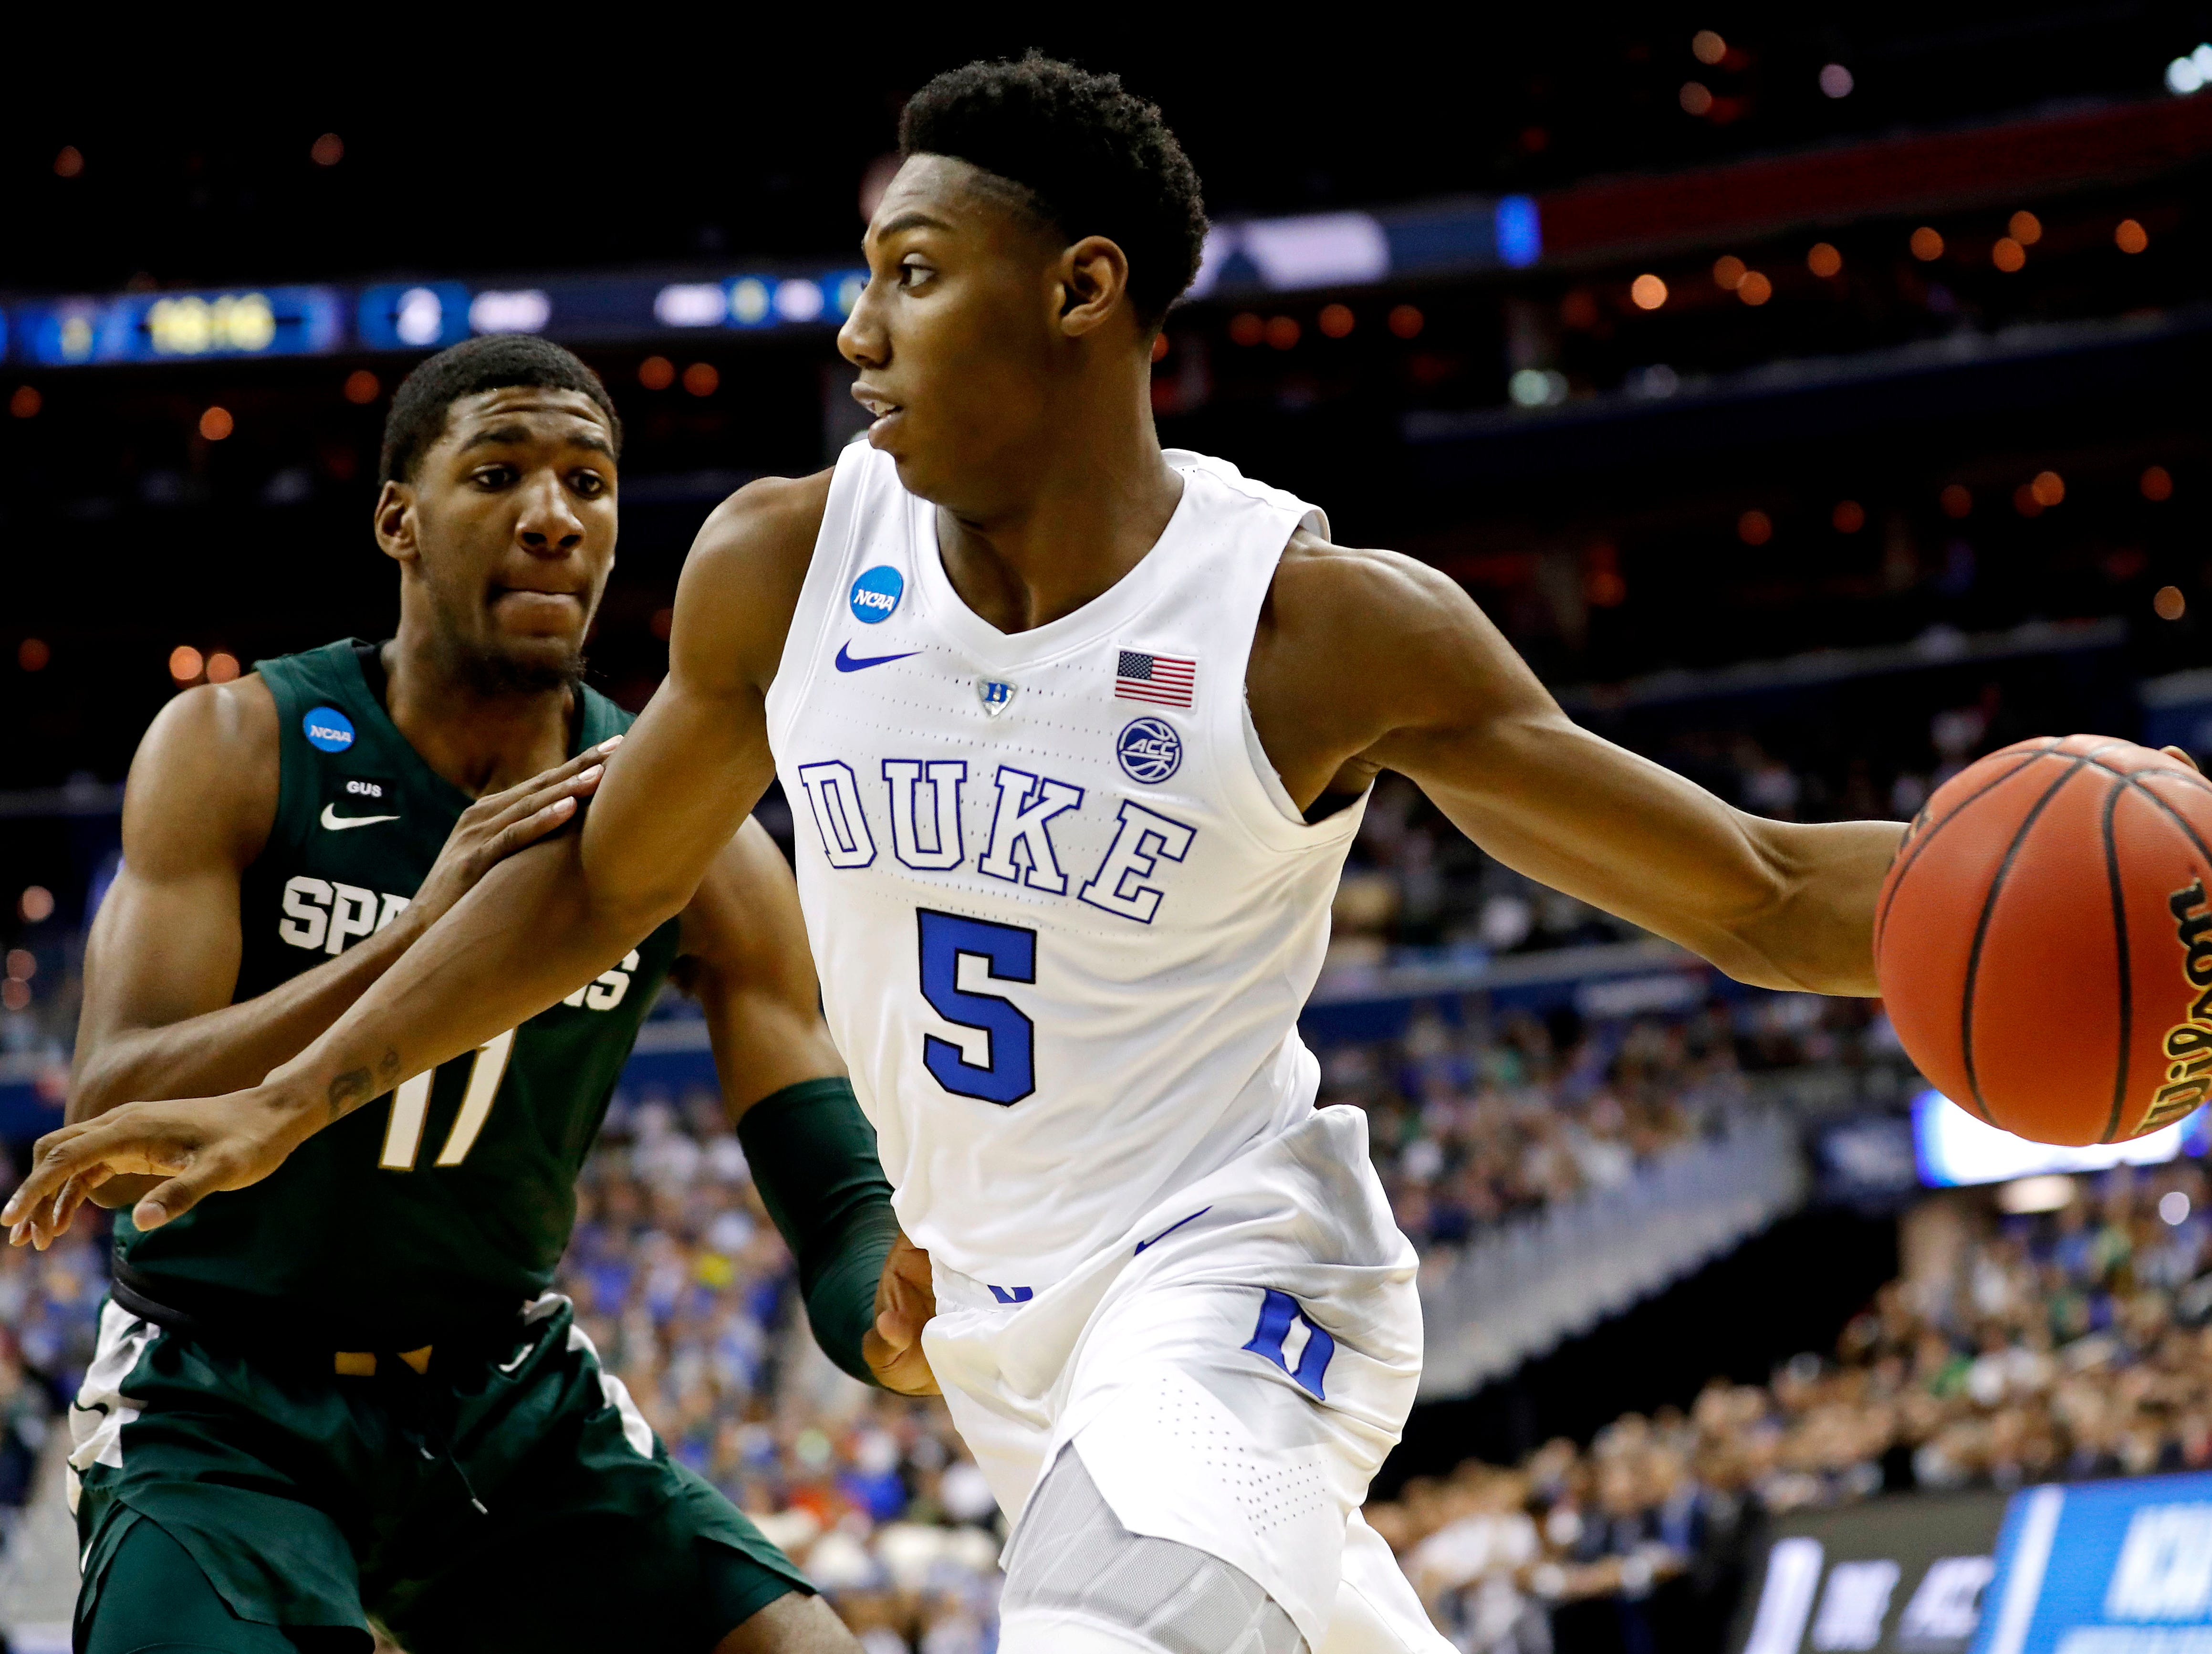 Mar 31, 2019; Washington, DC, USA; Duke Blue Devils forward RJ Barrett (5) drives to the basket against Michigan State Spartans forward Aaron Henry (11) during the first half in the championship game of the east regional of the 2019 NCAA Tournament at Capital One Arena. Mandatory Credit: Geoff Burke-USA TODAY Sports